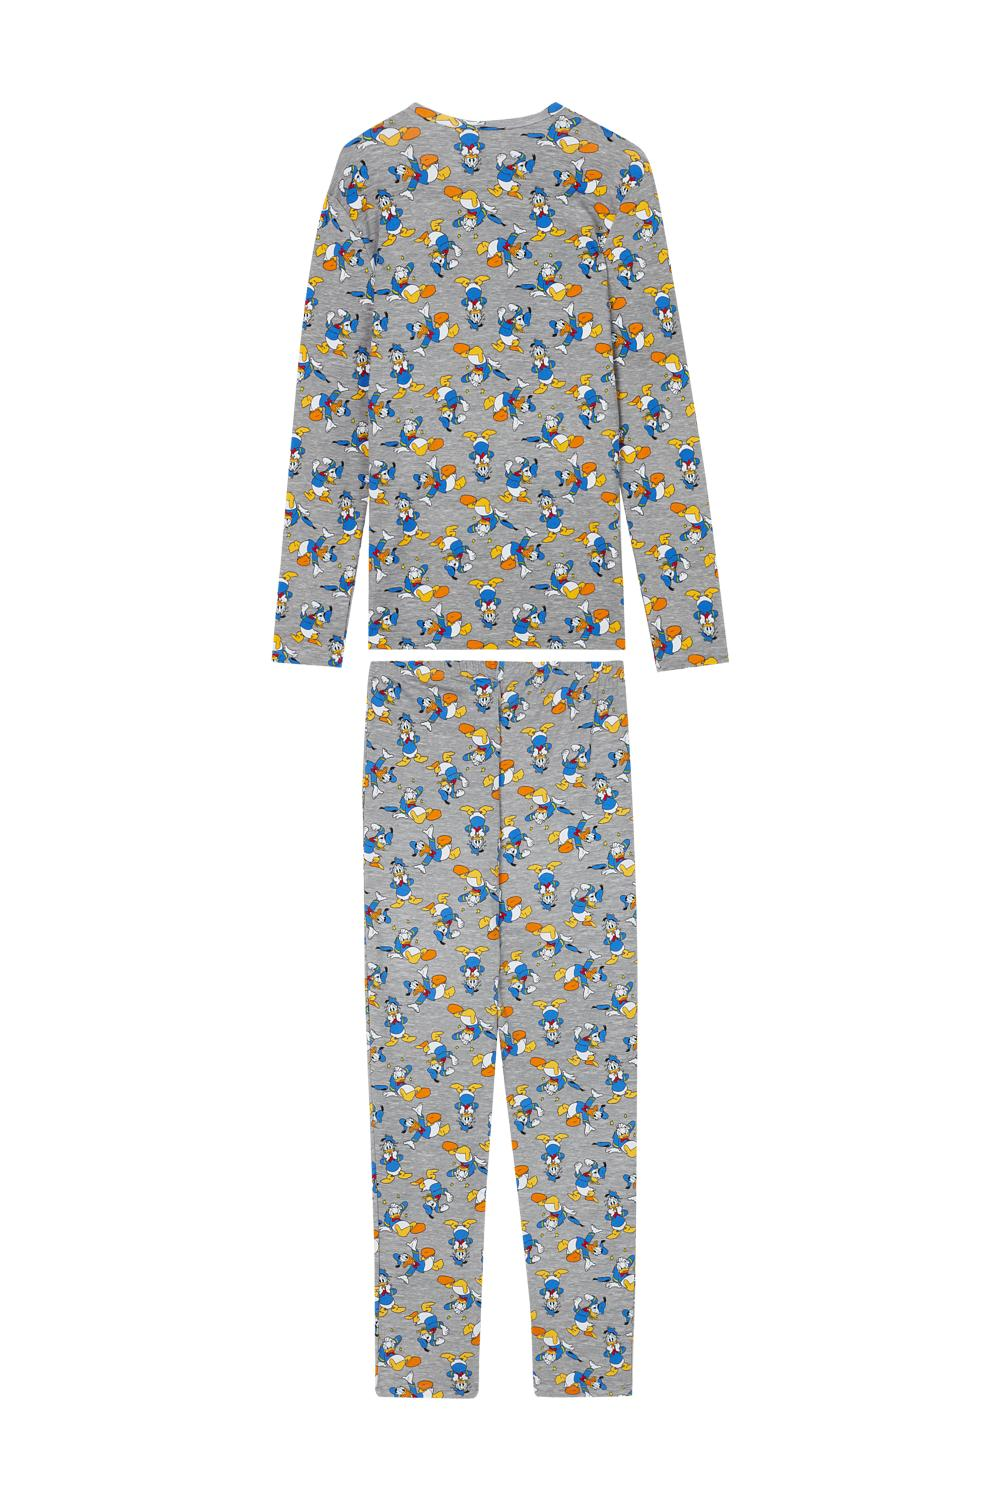 Donald Duck© Pyjamas